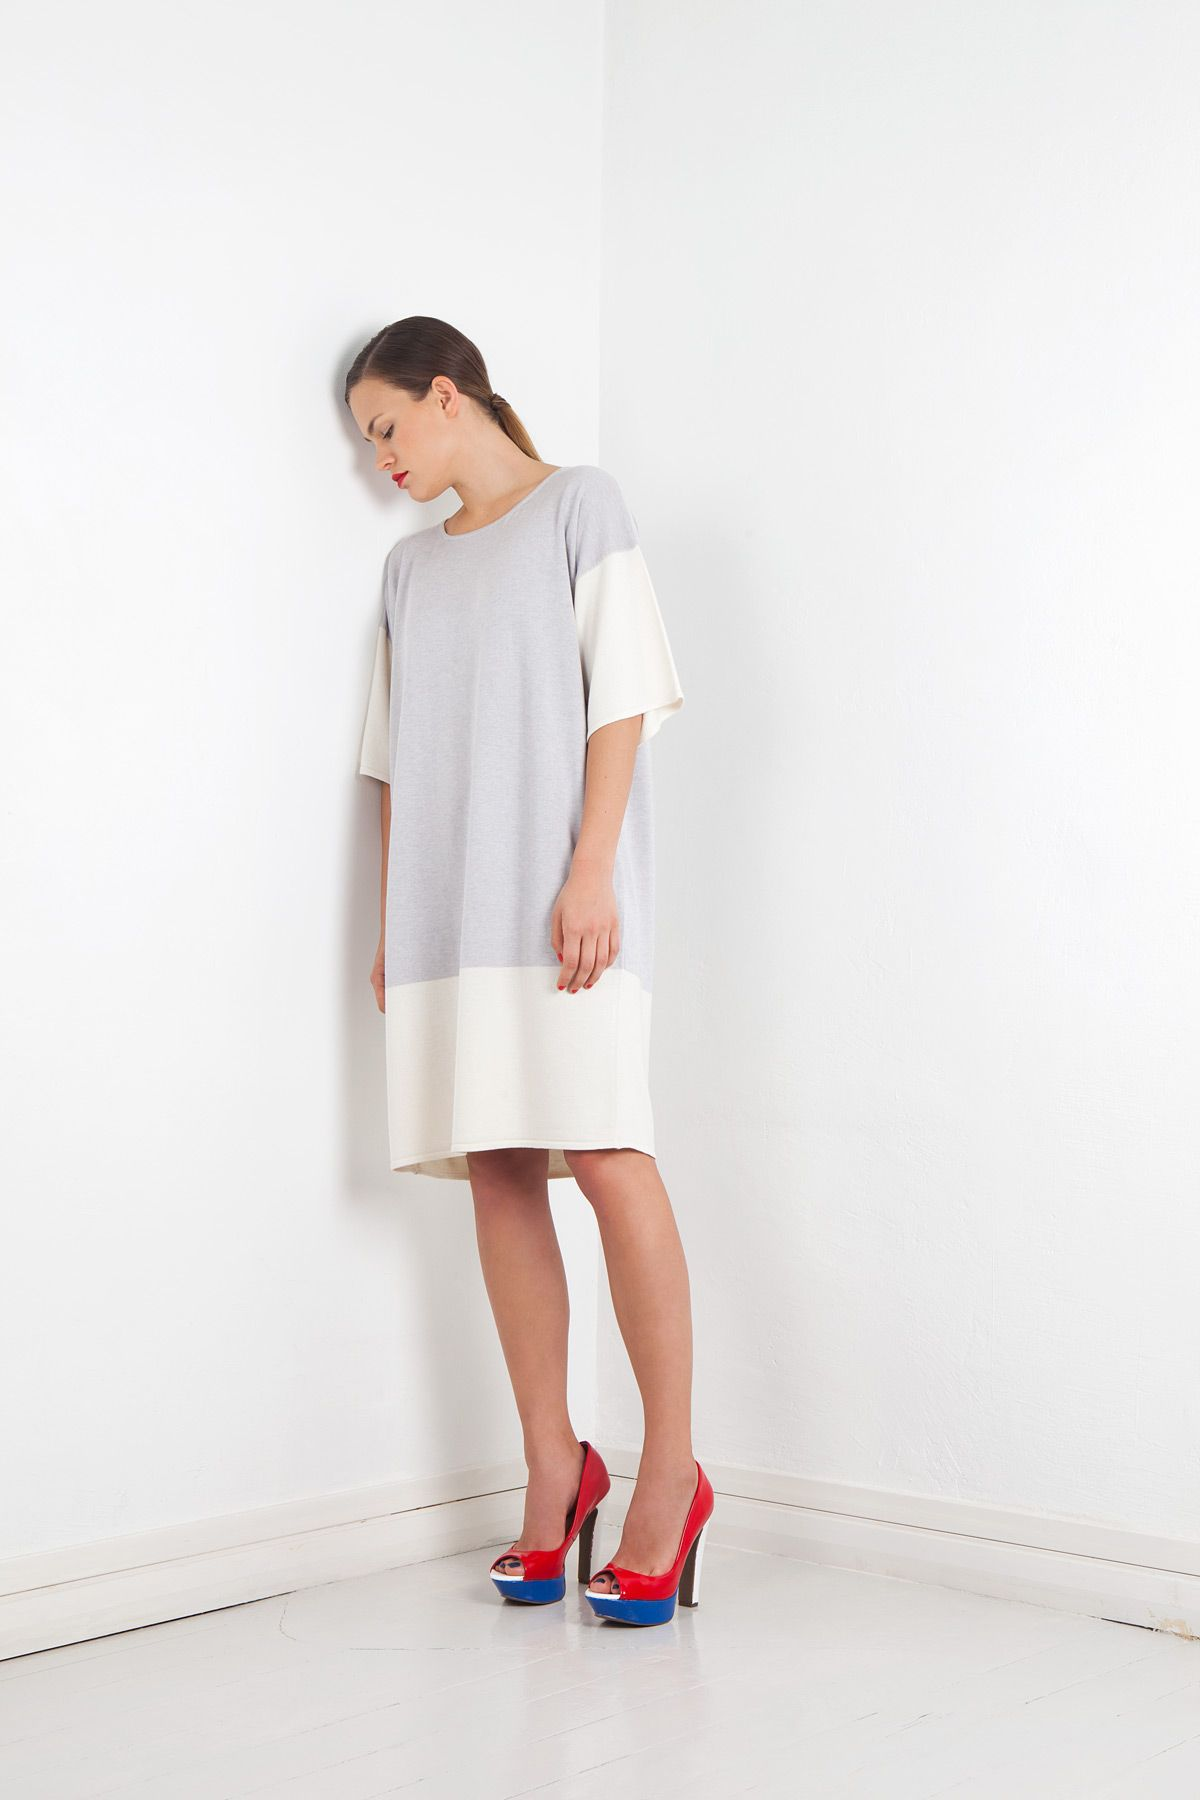 Arelalizza SS 2013